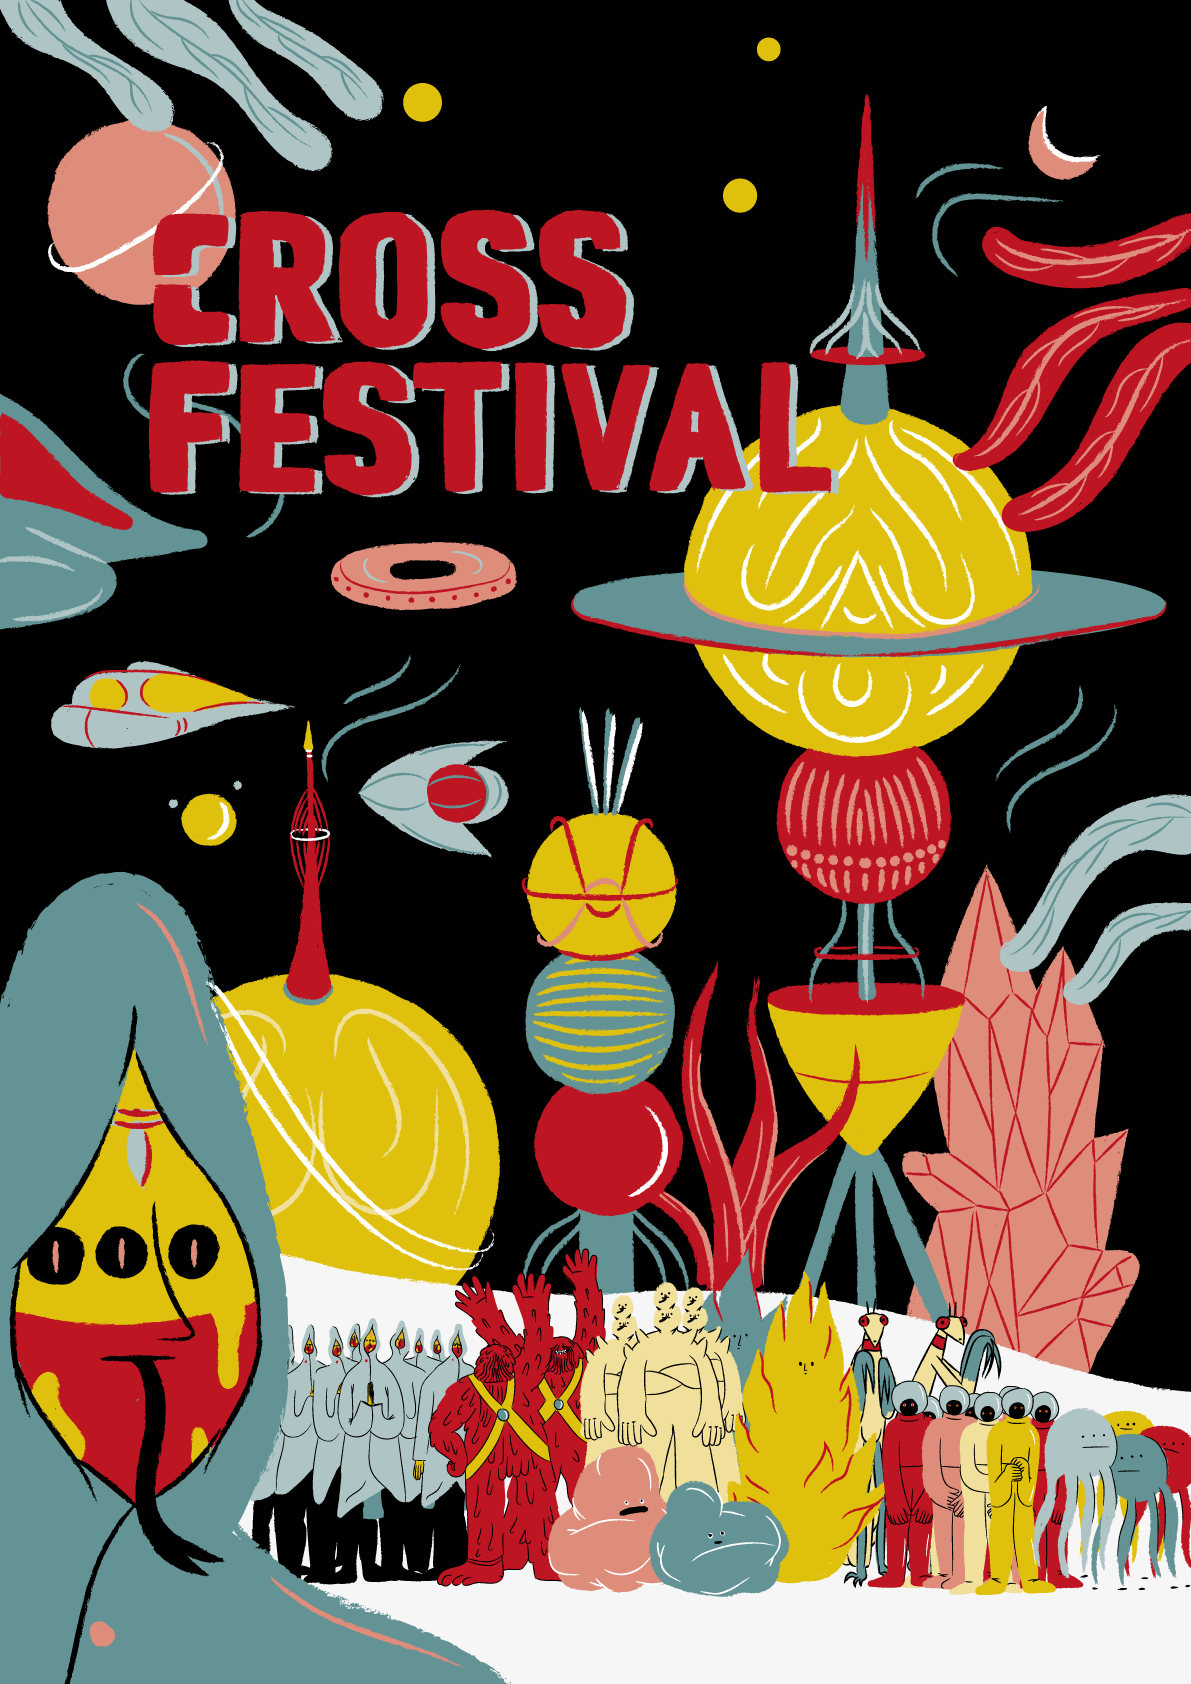 Illustration for Cross Festival